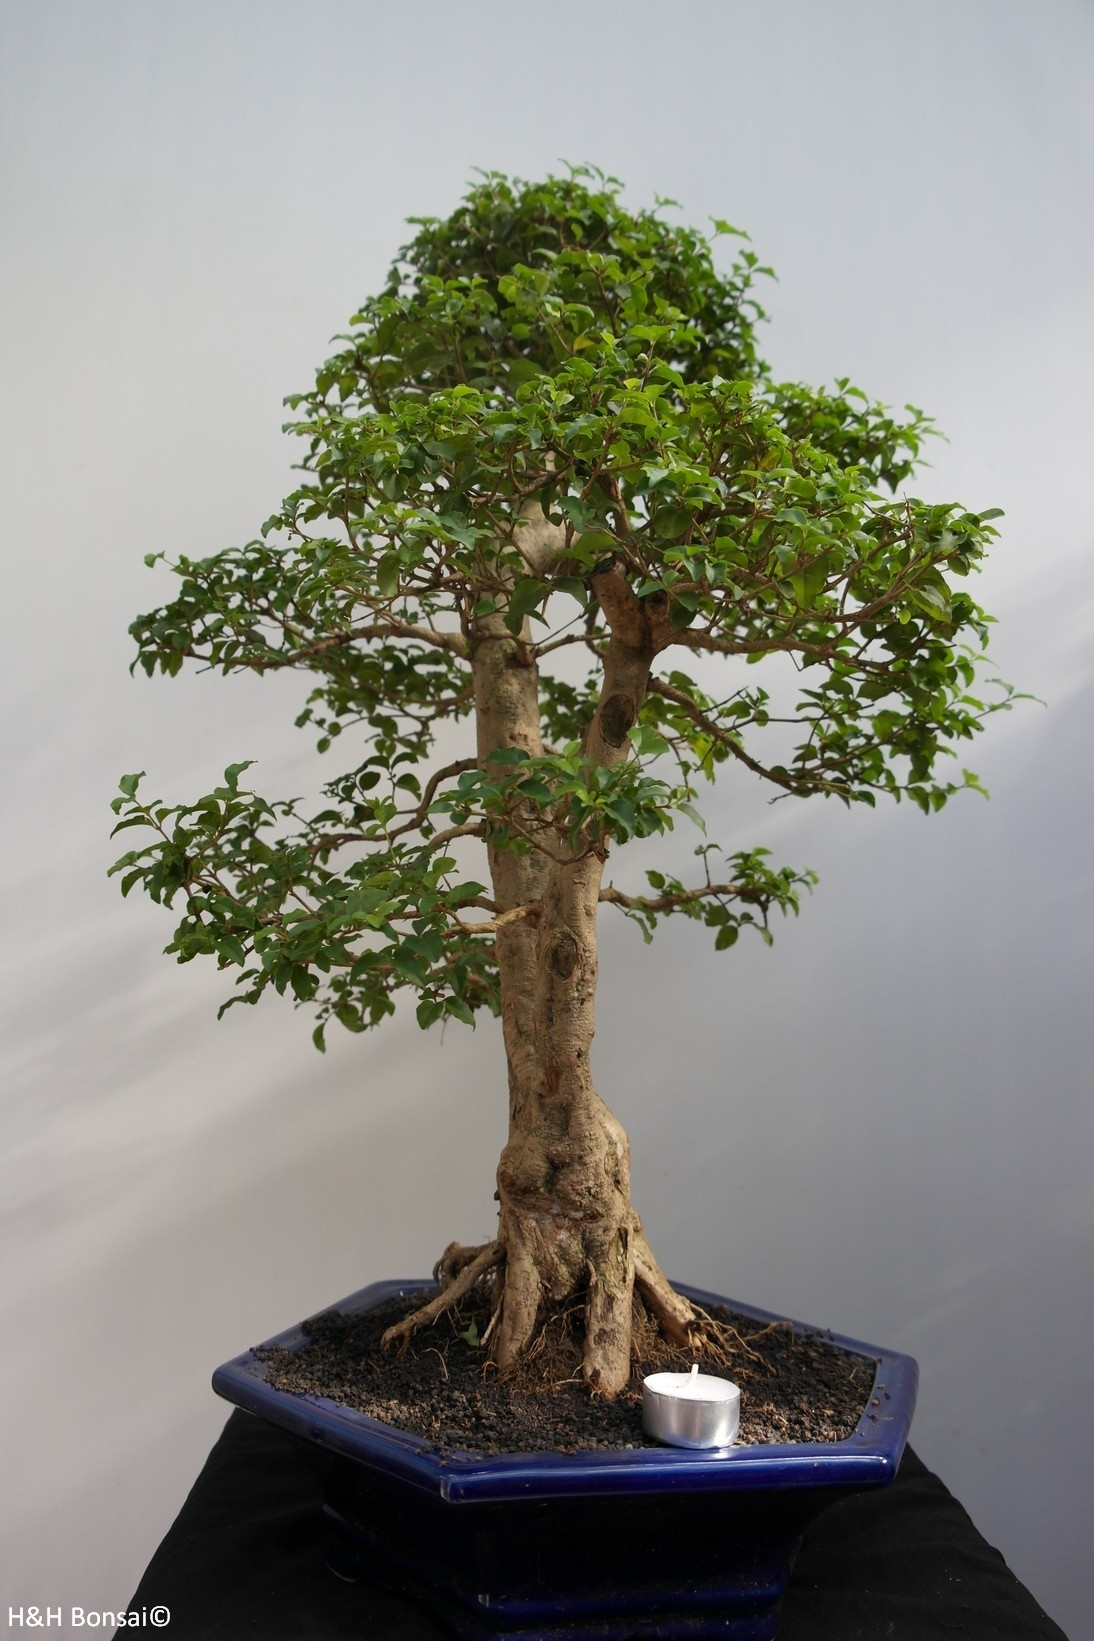 Bonsai Privet, Ligustrum sinense, no. 7846